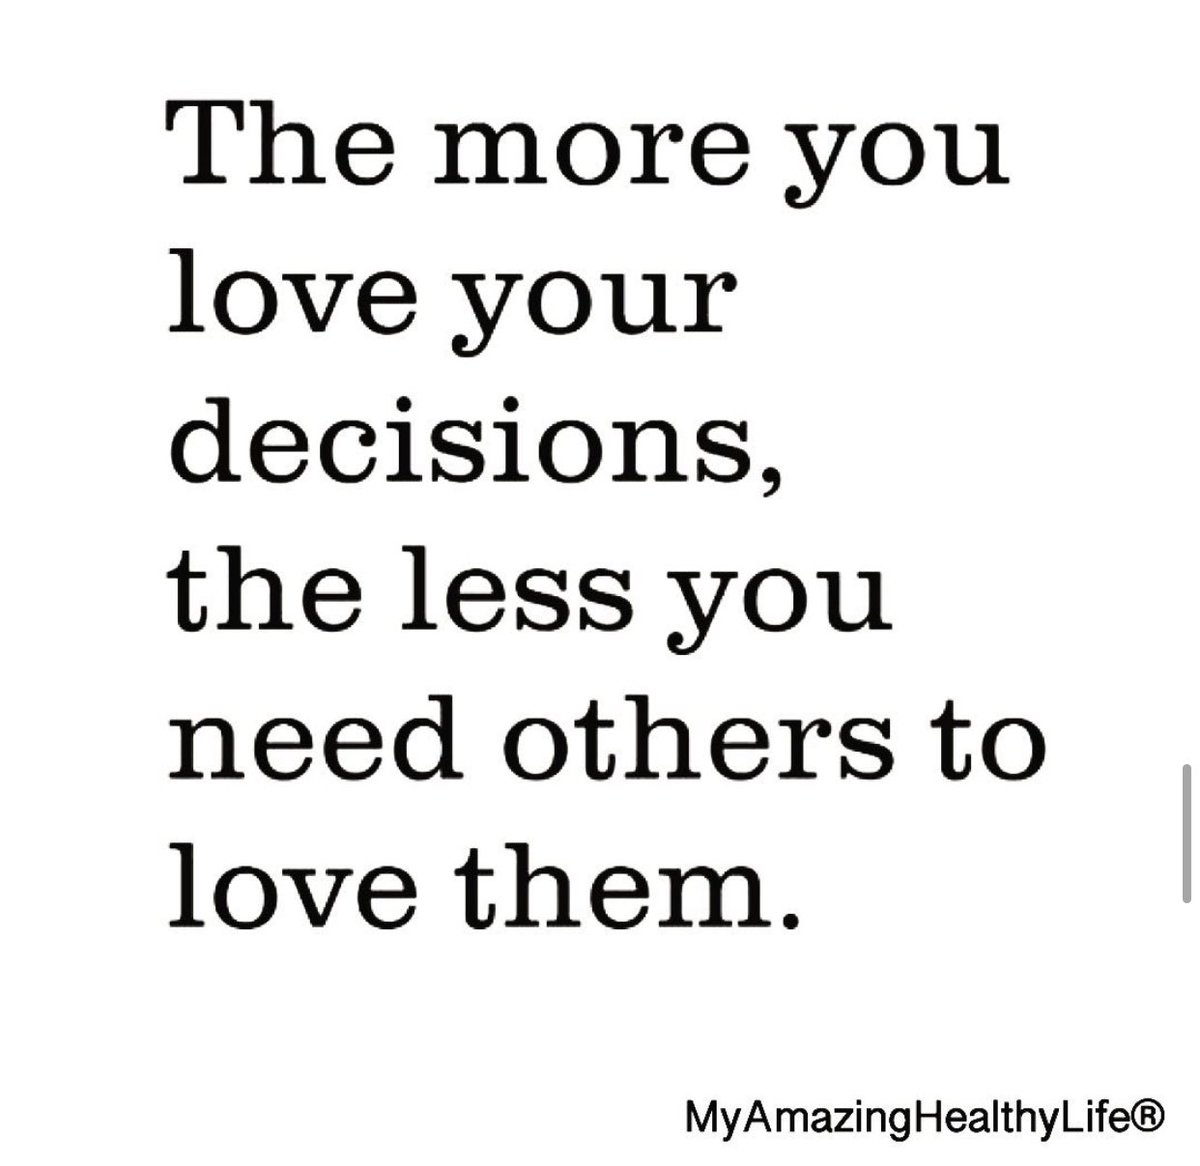 🥰❤️🙌🏽 if we want to live a #life we love we must choose to #align ourself with #love.  Should You Follow Your #Heart or Your #Head?